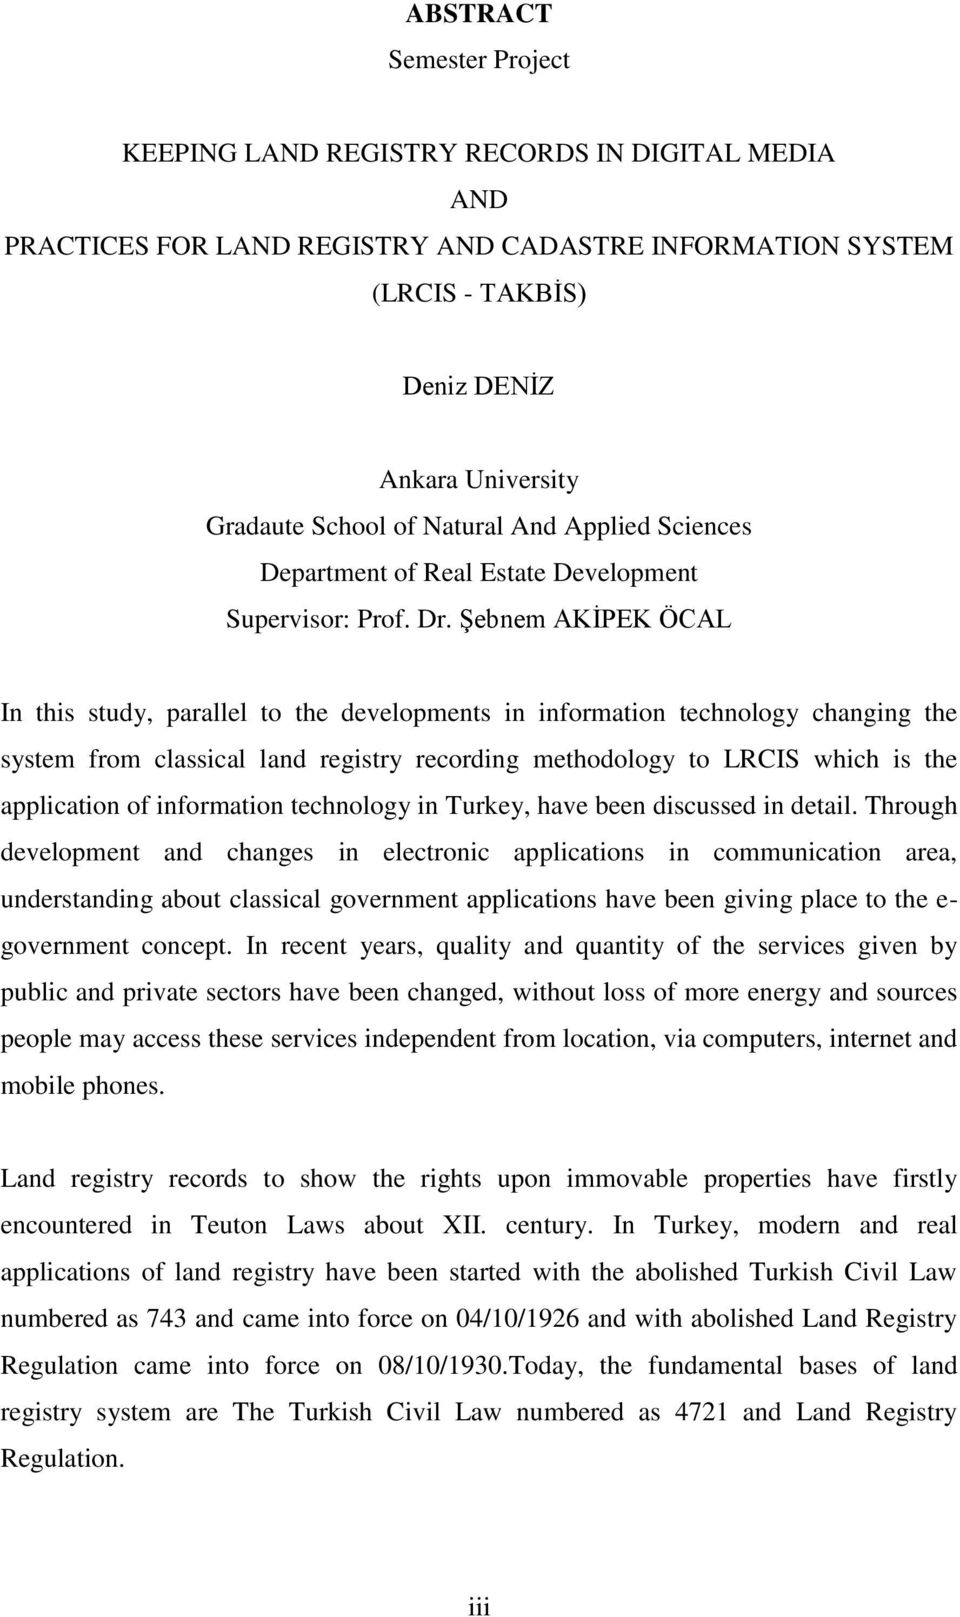 Şebnem AKİPEK ÖCAL In this study, parallel to the developments in information technology changing the system from classical land registry recording methodology to LRCIS which is the application of